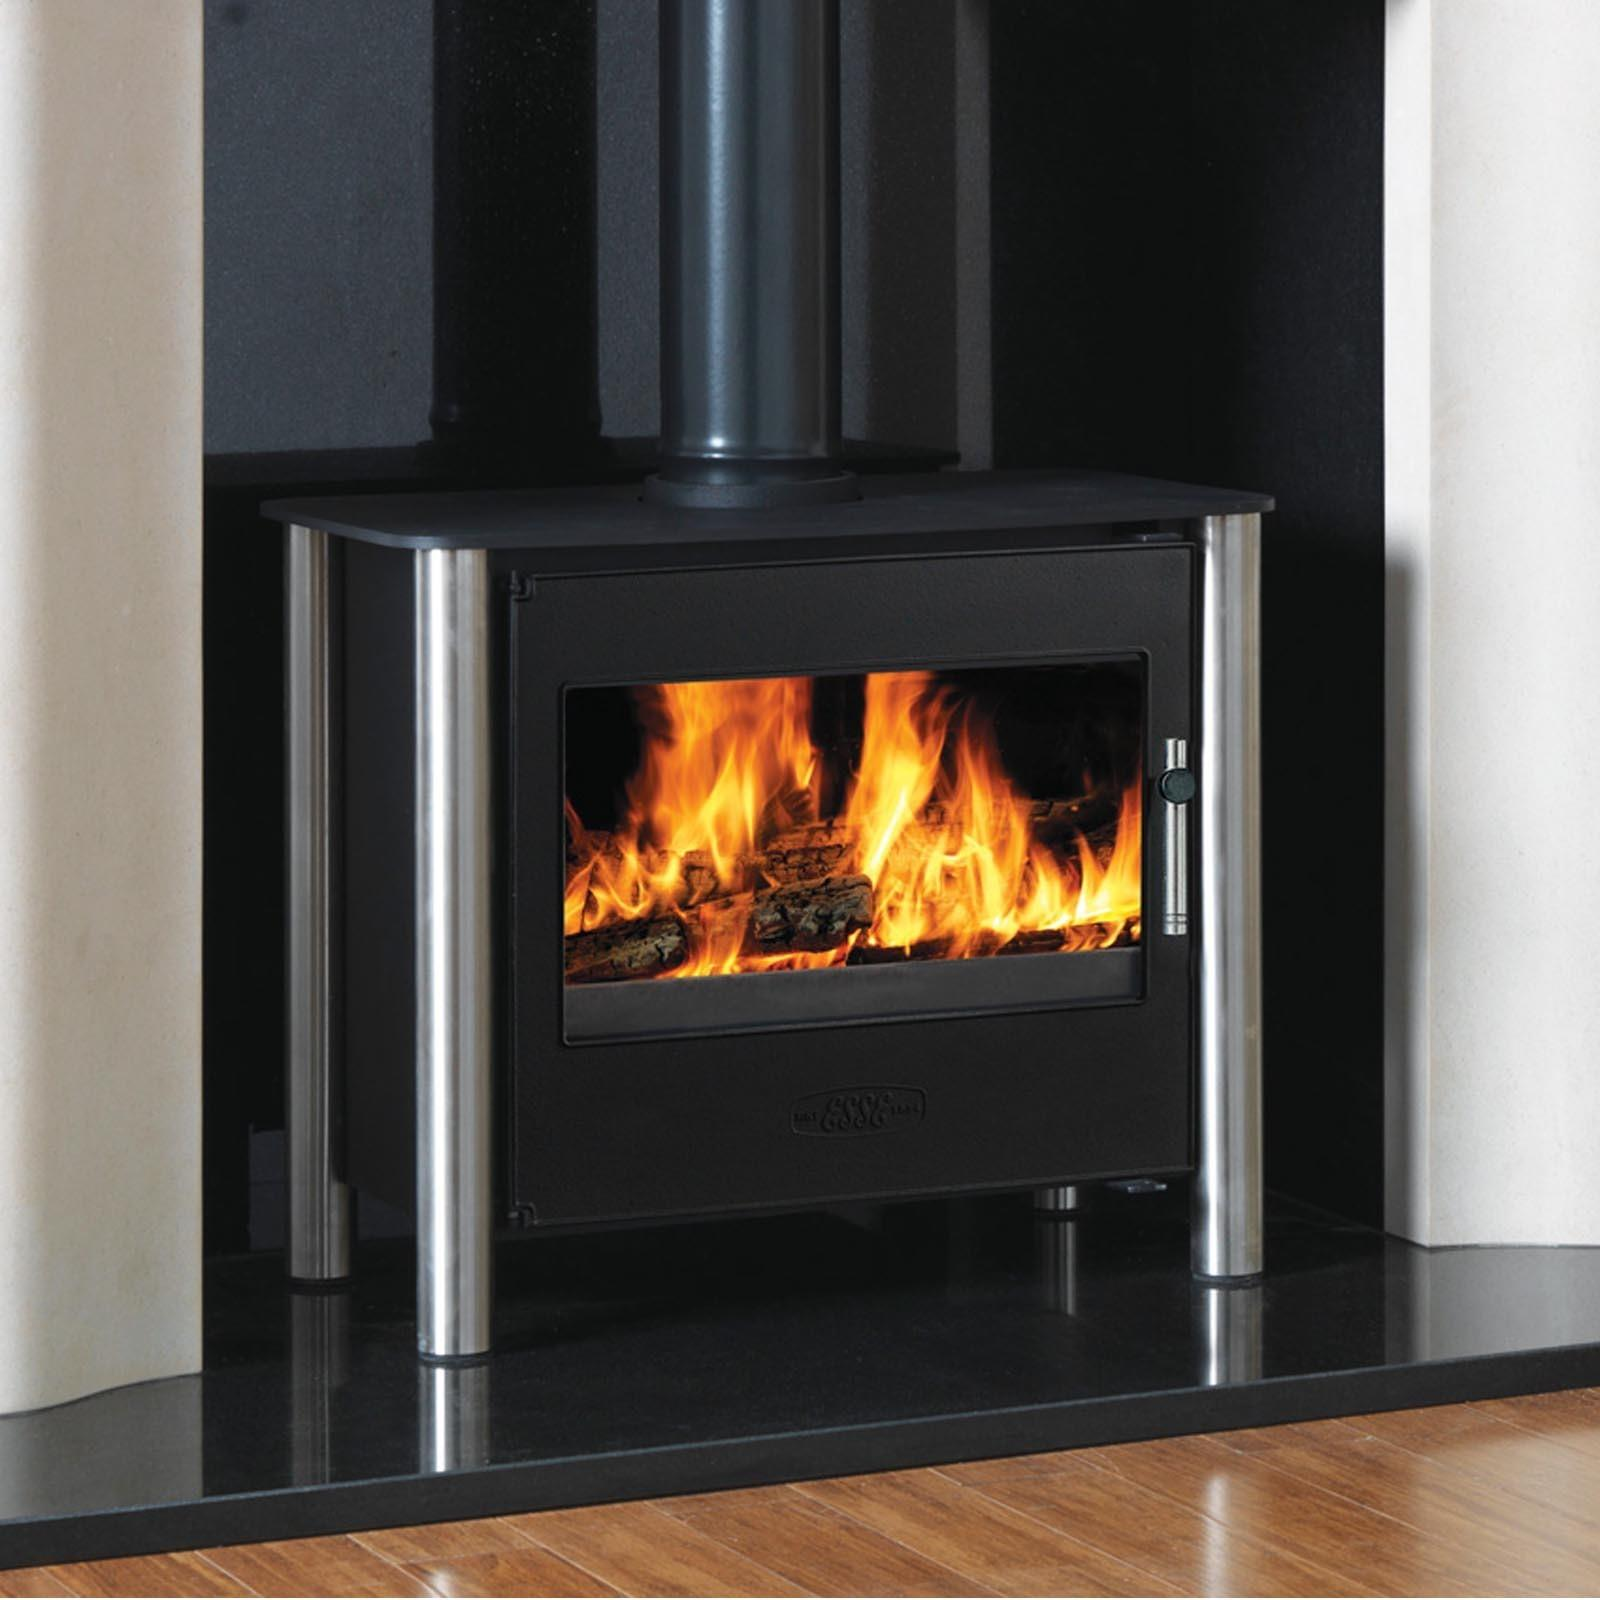 Unbeatable Deals Esse 125 Multifuel Woodburning Gas